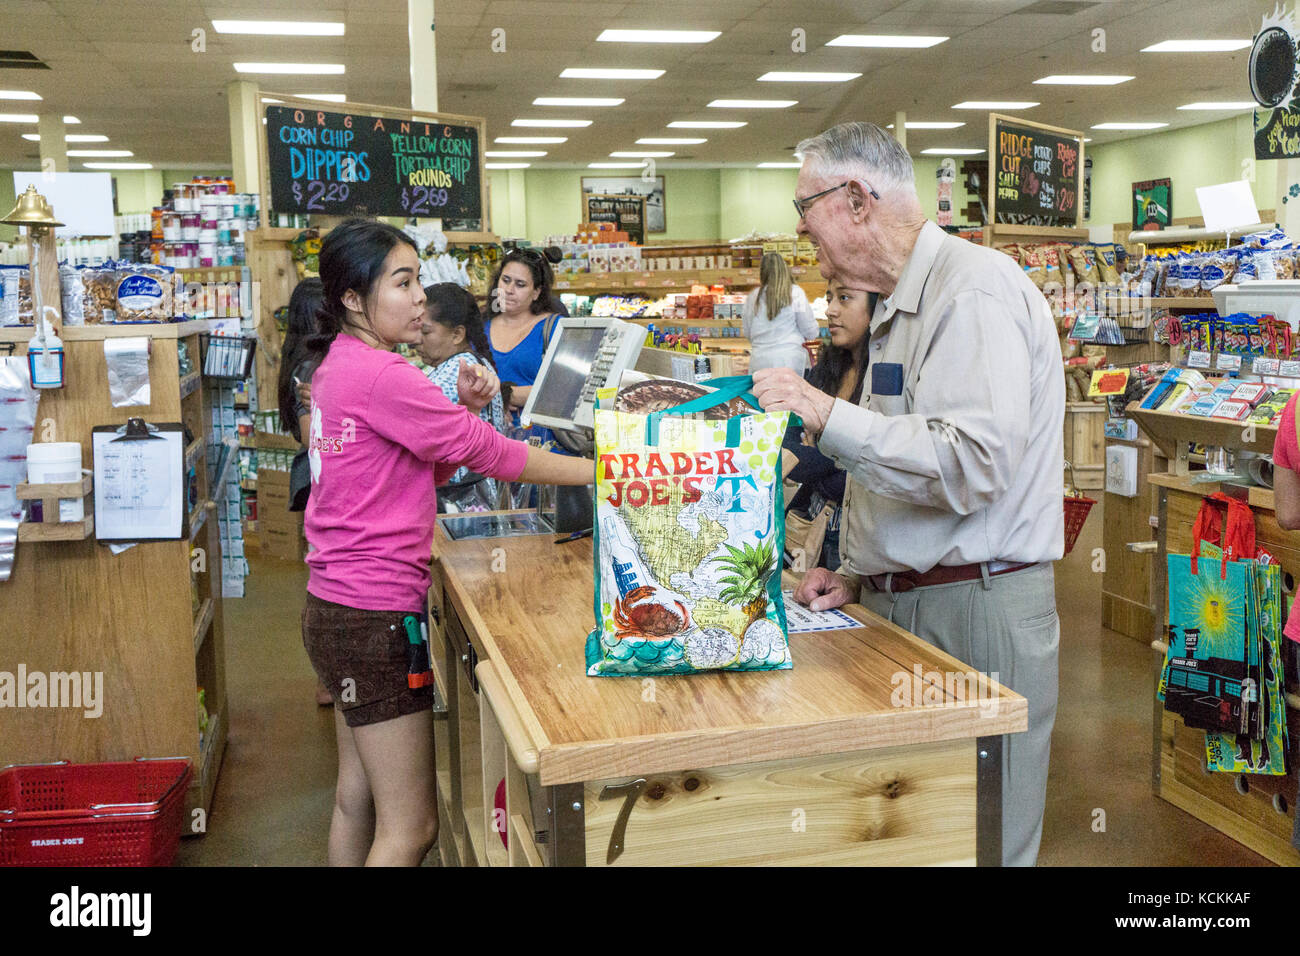 tall smiling elderly man at supermarket checkout stops briefly for  pleasant word with pretty young Asian cashier - Stock Image